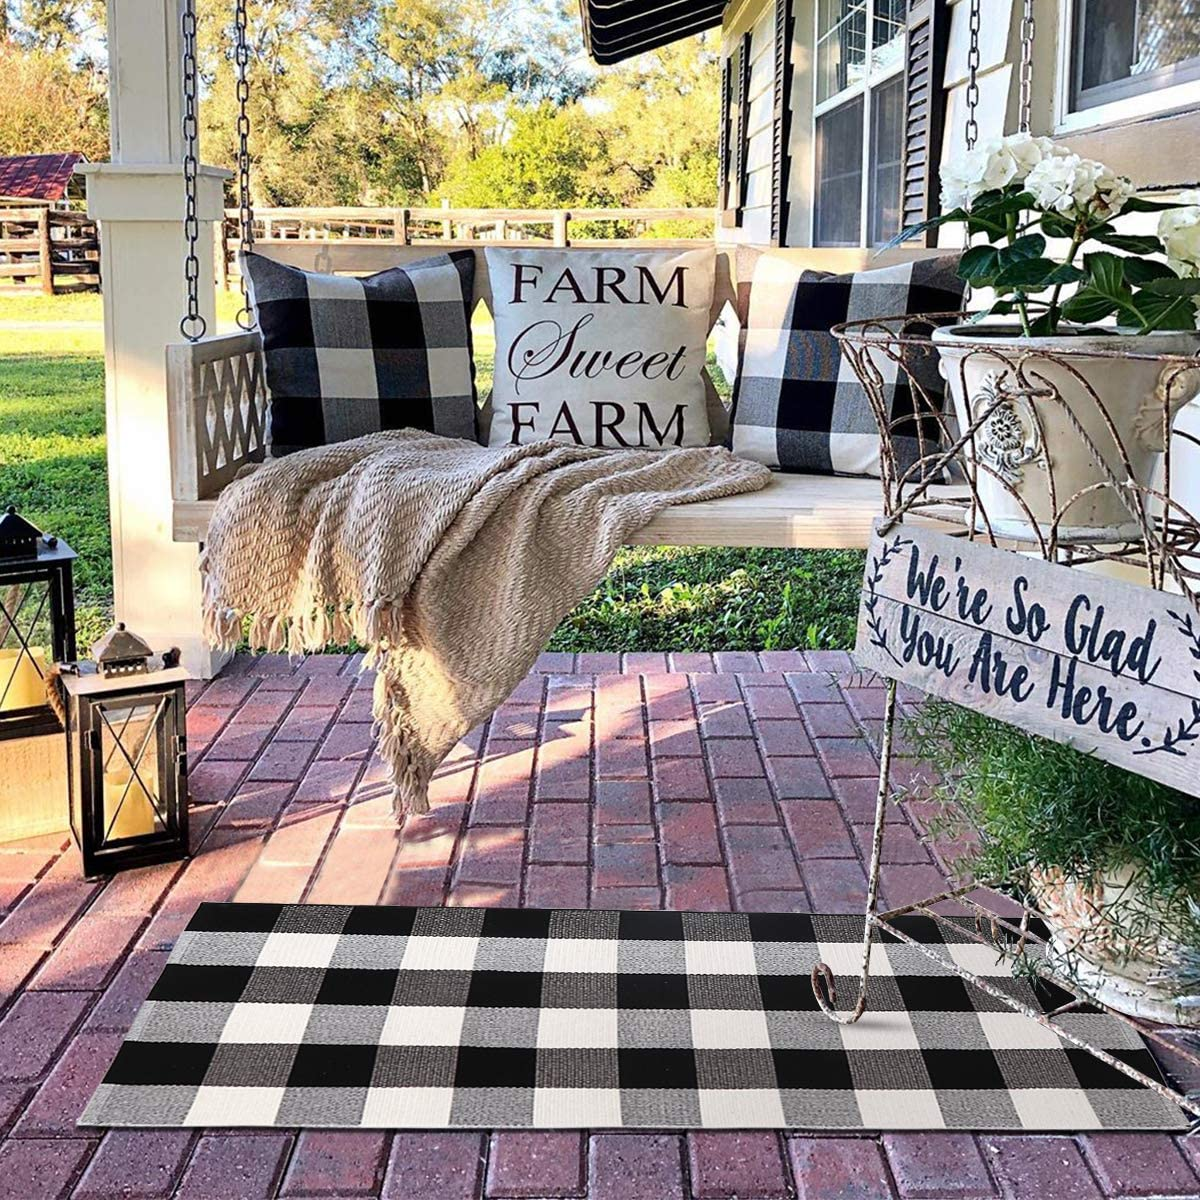 Seavish Cotton Buffalo Checkered Rug,2 Piece Set Black and White Plaid Rug Handmade Moven Runner Doormat Includes 2 x3 2 x4.4 ,Machine Washable Carpet Welcome Mat for Outdoor Porch Entry Way